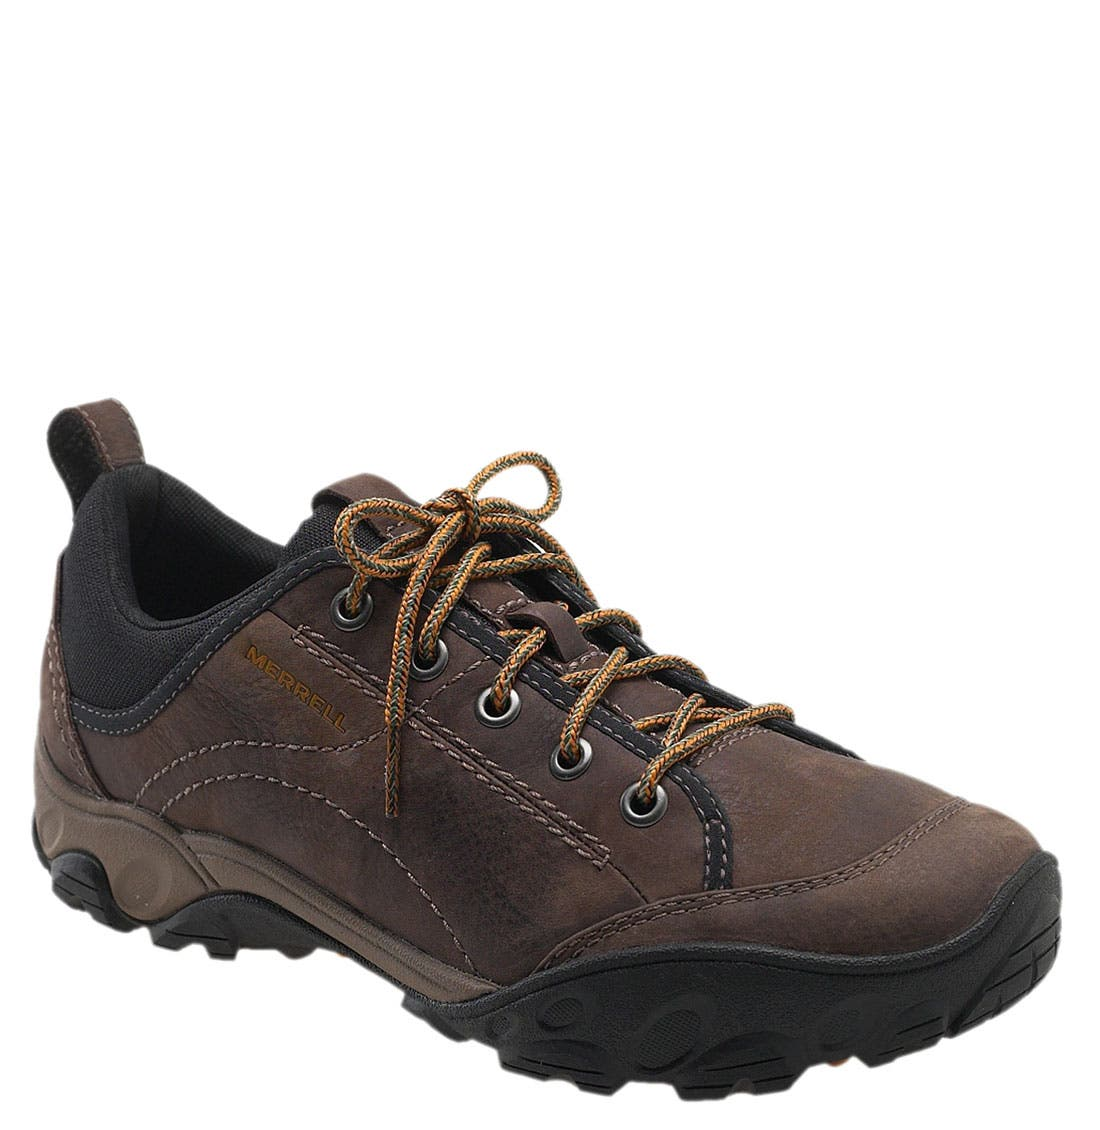 Alternate Image 1 Selected - Merrell 'Sight' Shoe (Men) (Online Only)